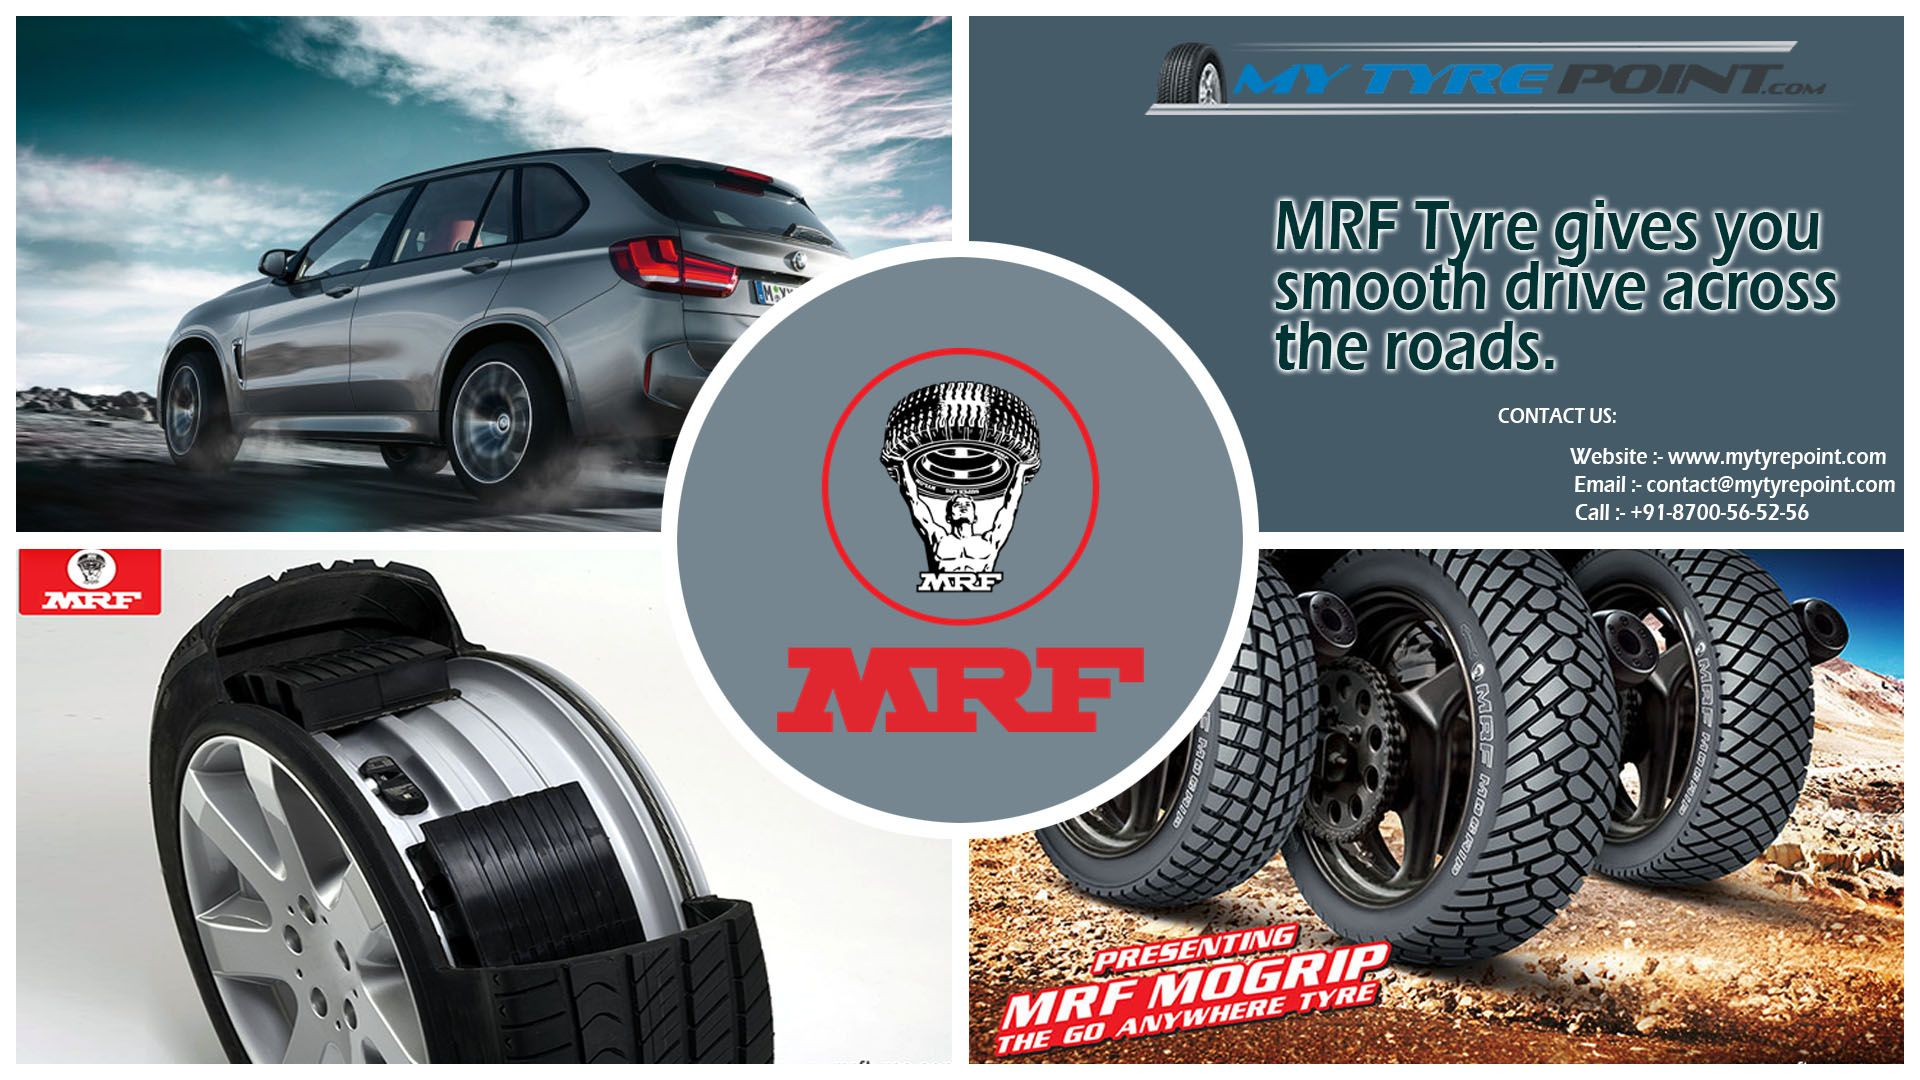 Buy New Mrf Tyres Online In This New Year With Latest Offers And